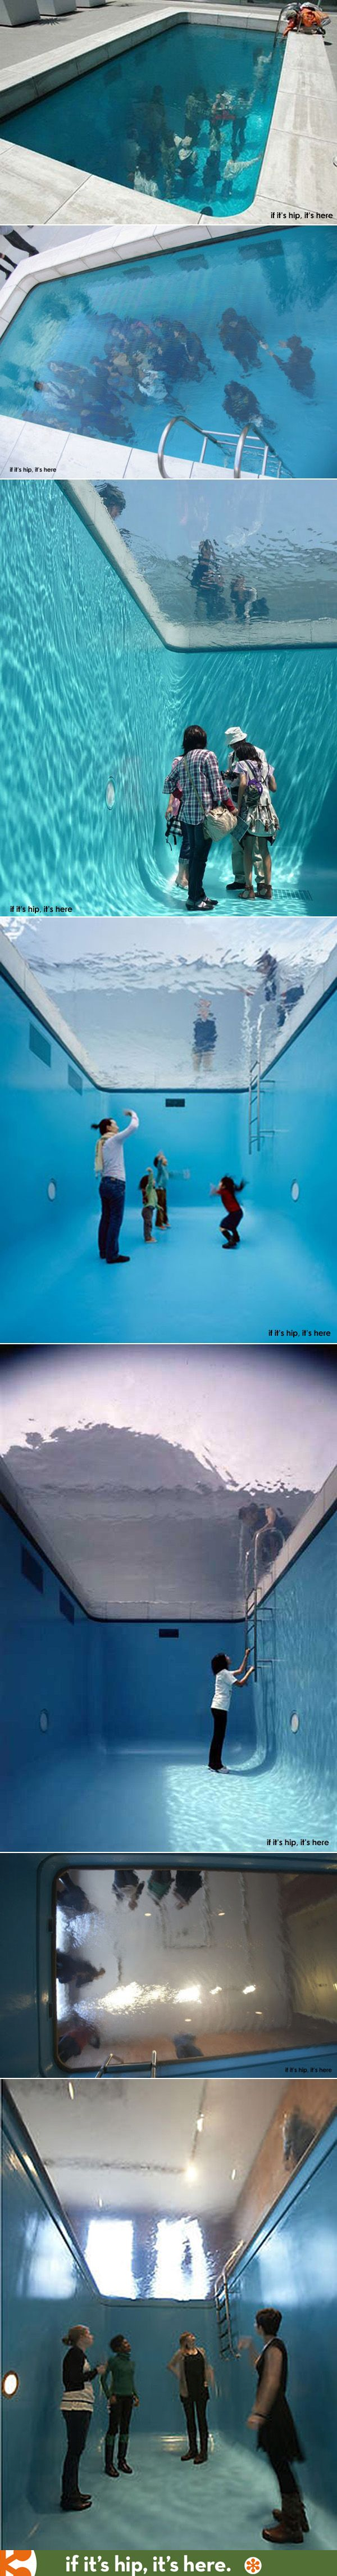 This Fake Pool is an art installation. Learn all about it at the link.